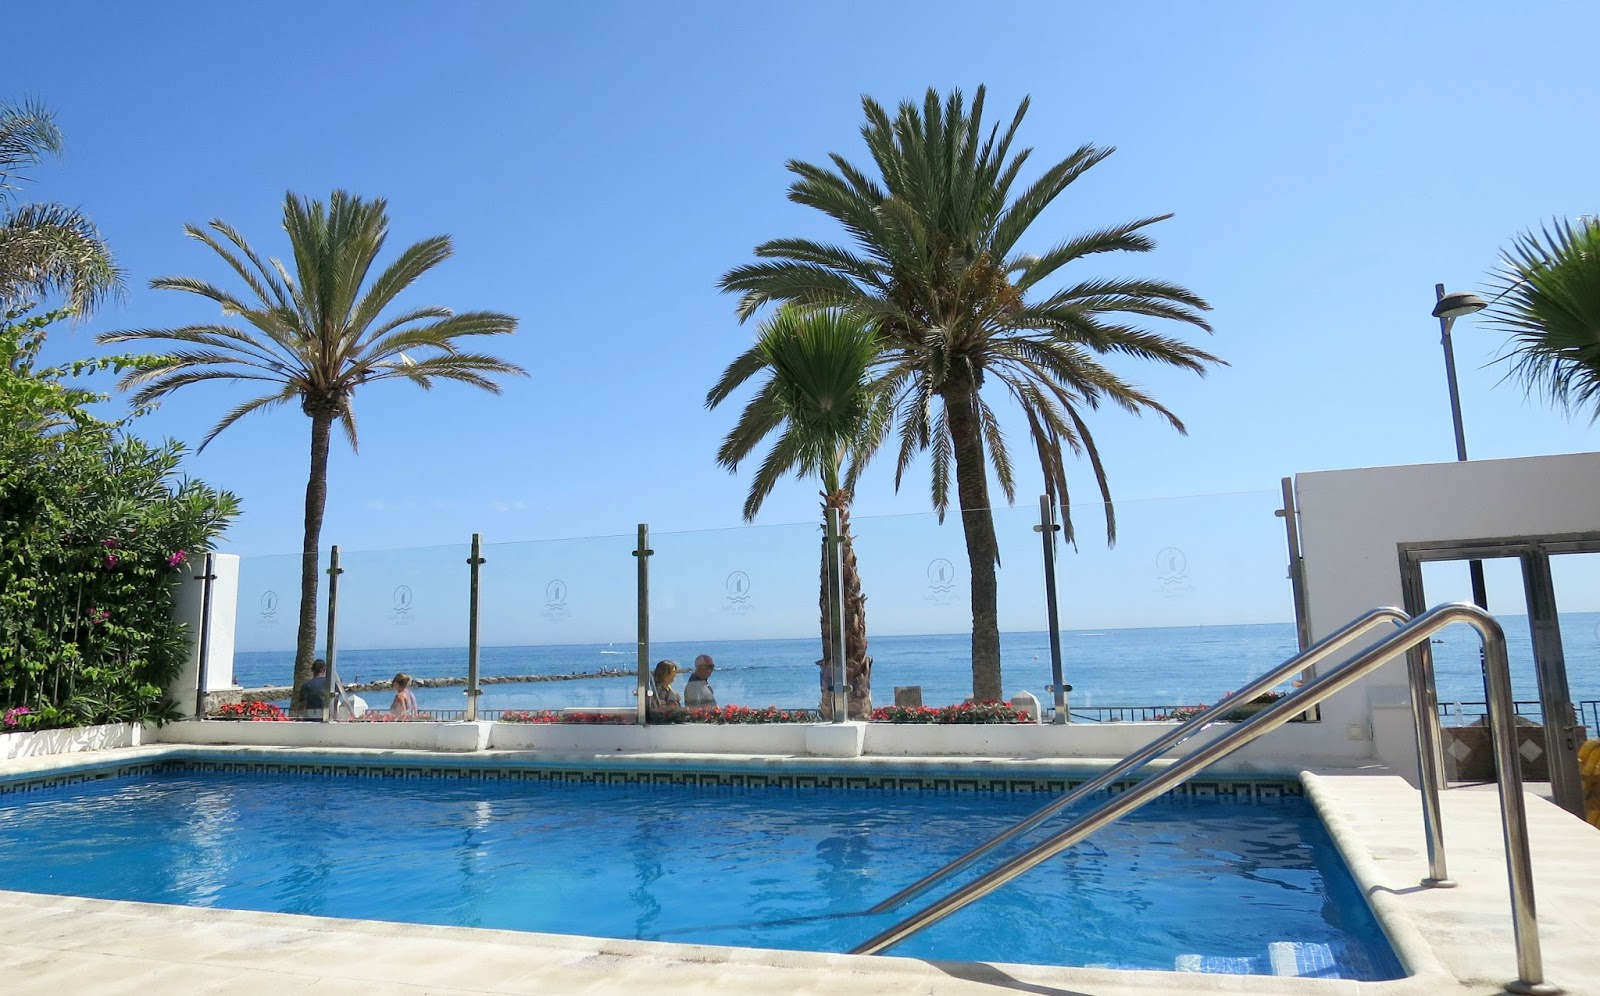 Holiday marbella spain part one hotel location daytime lilies and lipbalm - Aparthotel puerto azul marbella ...